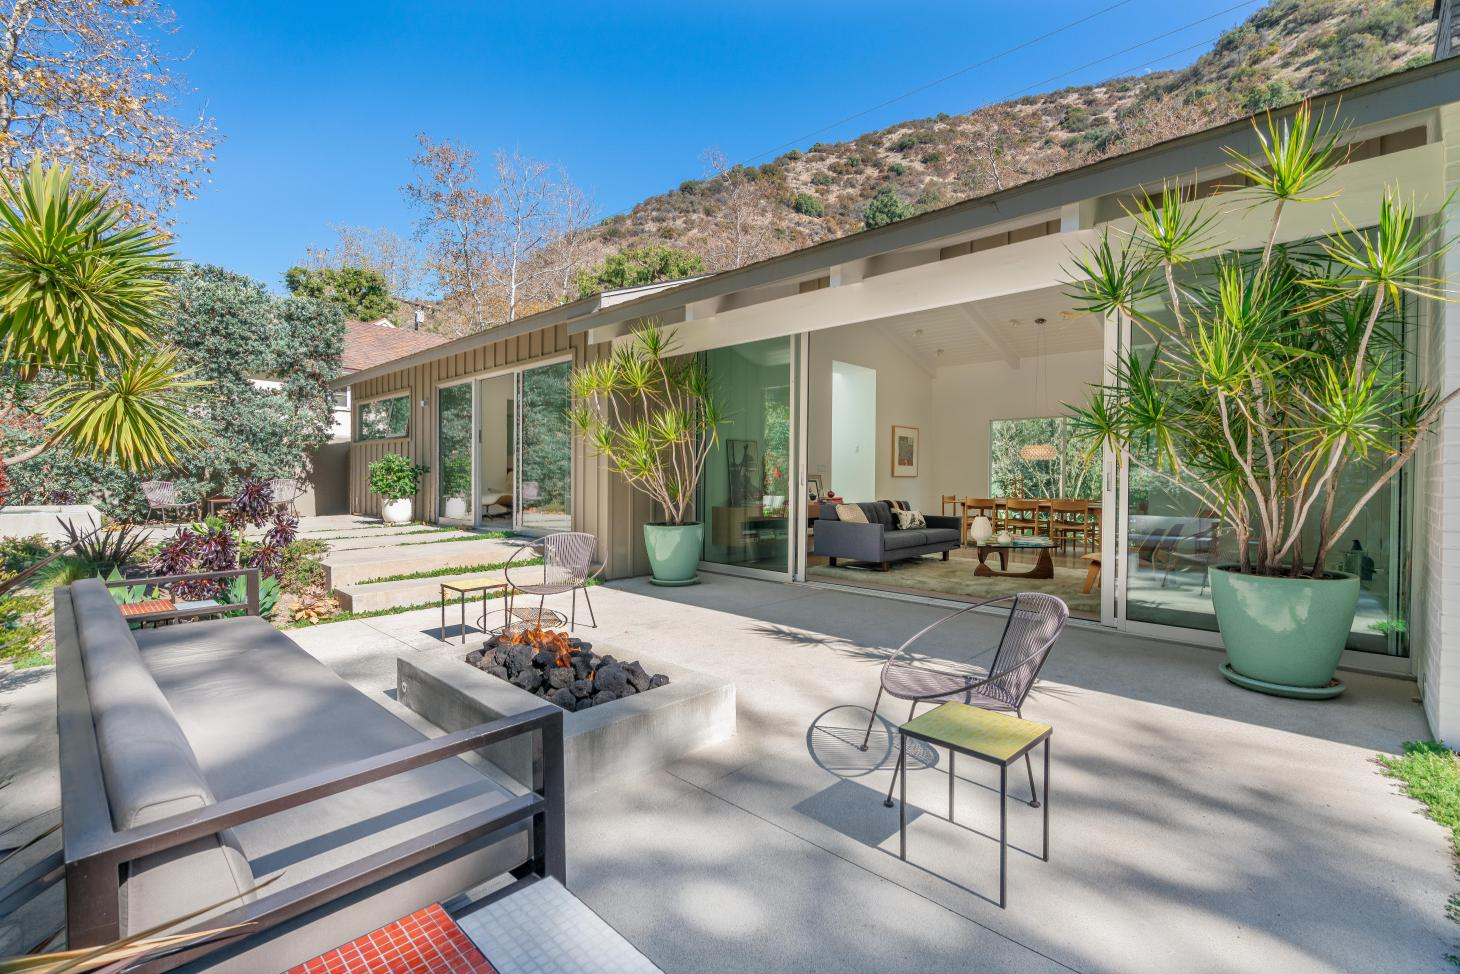 A newly restored mid-century bungalow to the north of Brentwood